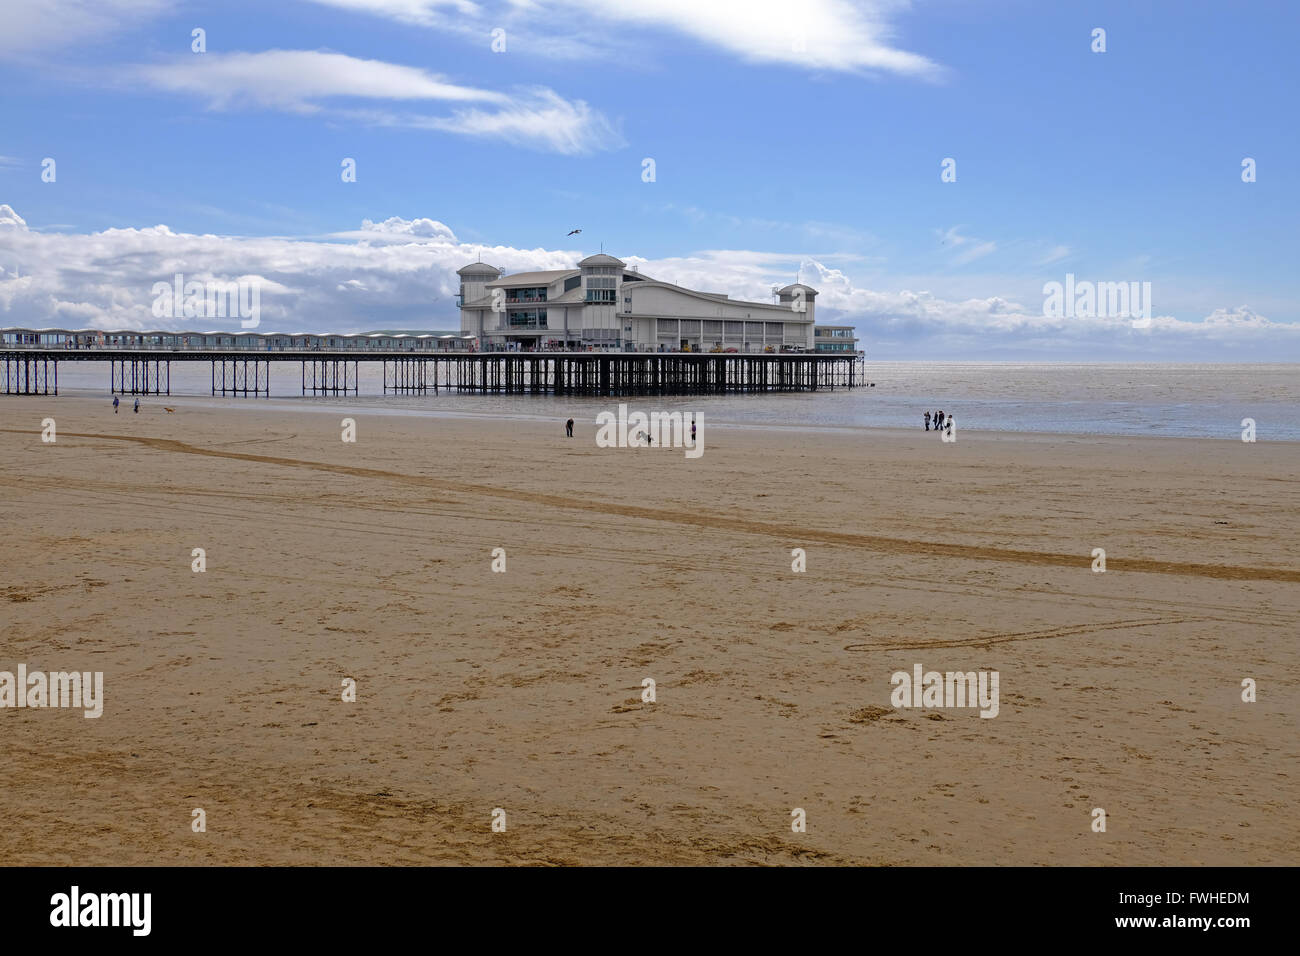 Weston-super-Mare, UK. 12th June, 2016. UK weather: dog walkers on the beach on a sunny, but windy afternoon. Credit: Stock Photo